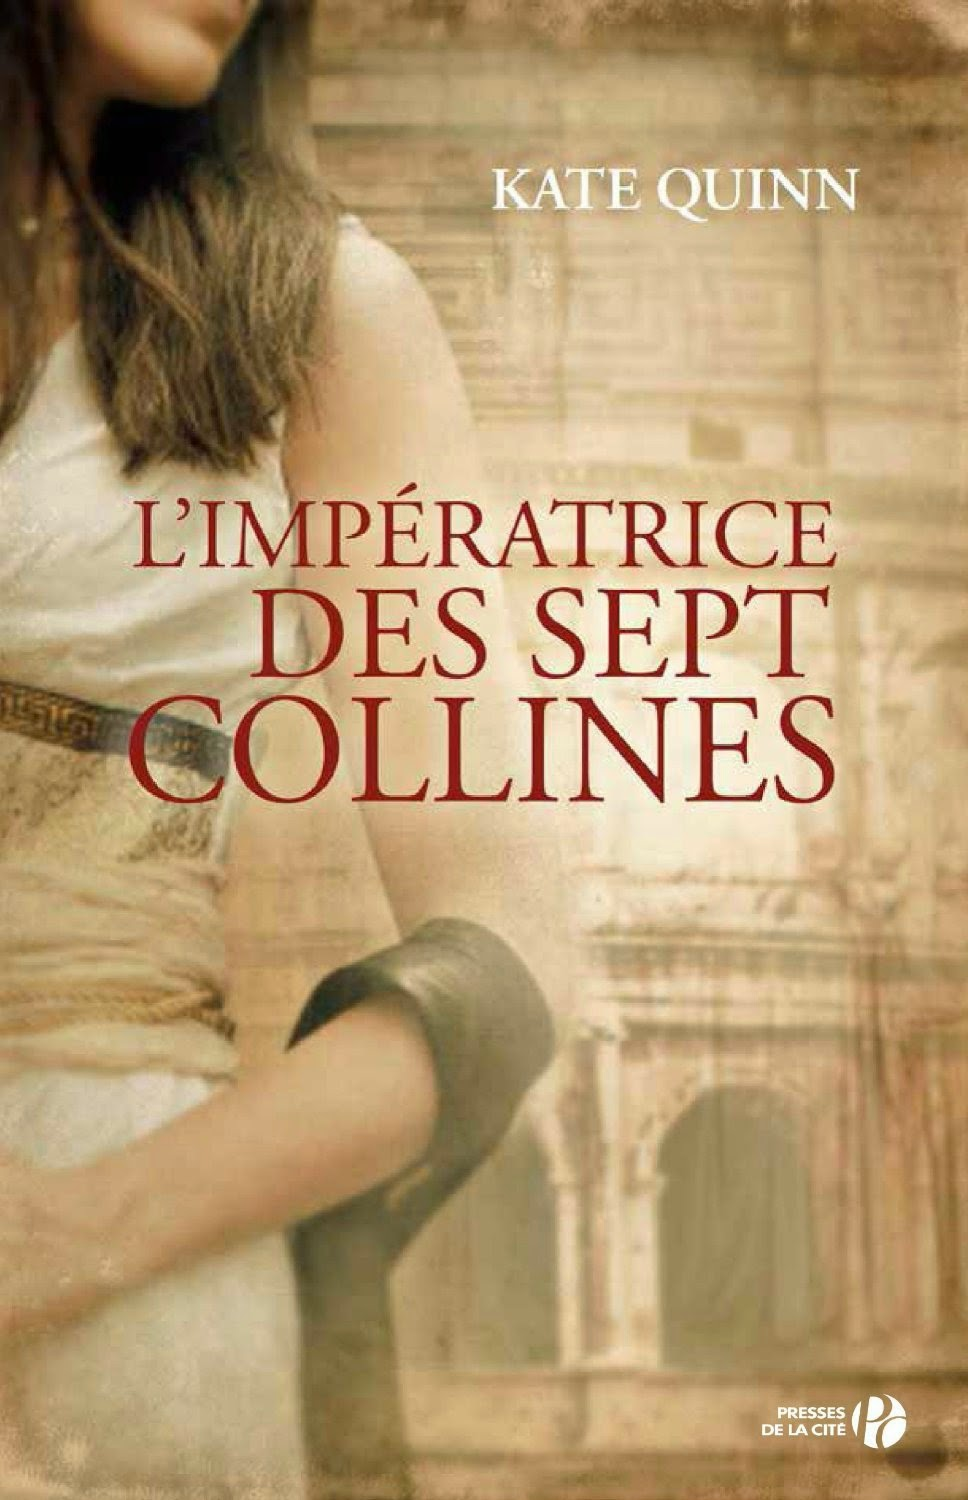 http://lachroniquedespassions.blogspot.fr/2014/09/limperatrice-des-sept-collines-kate.html